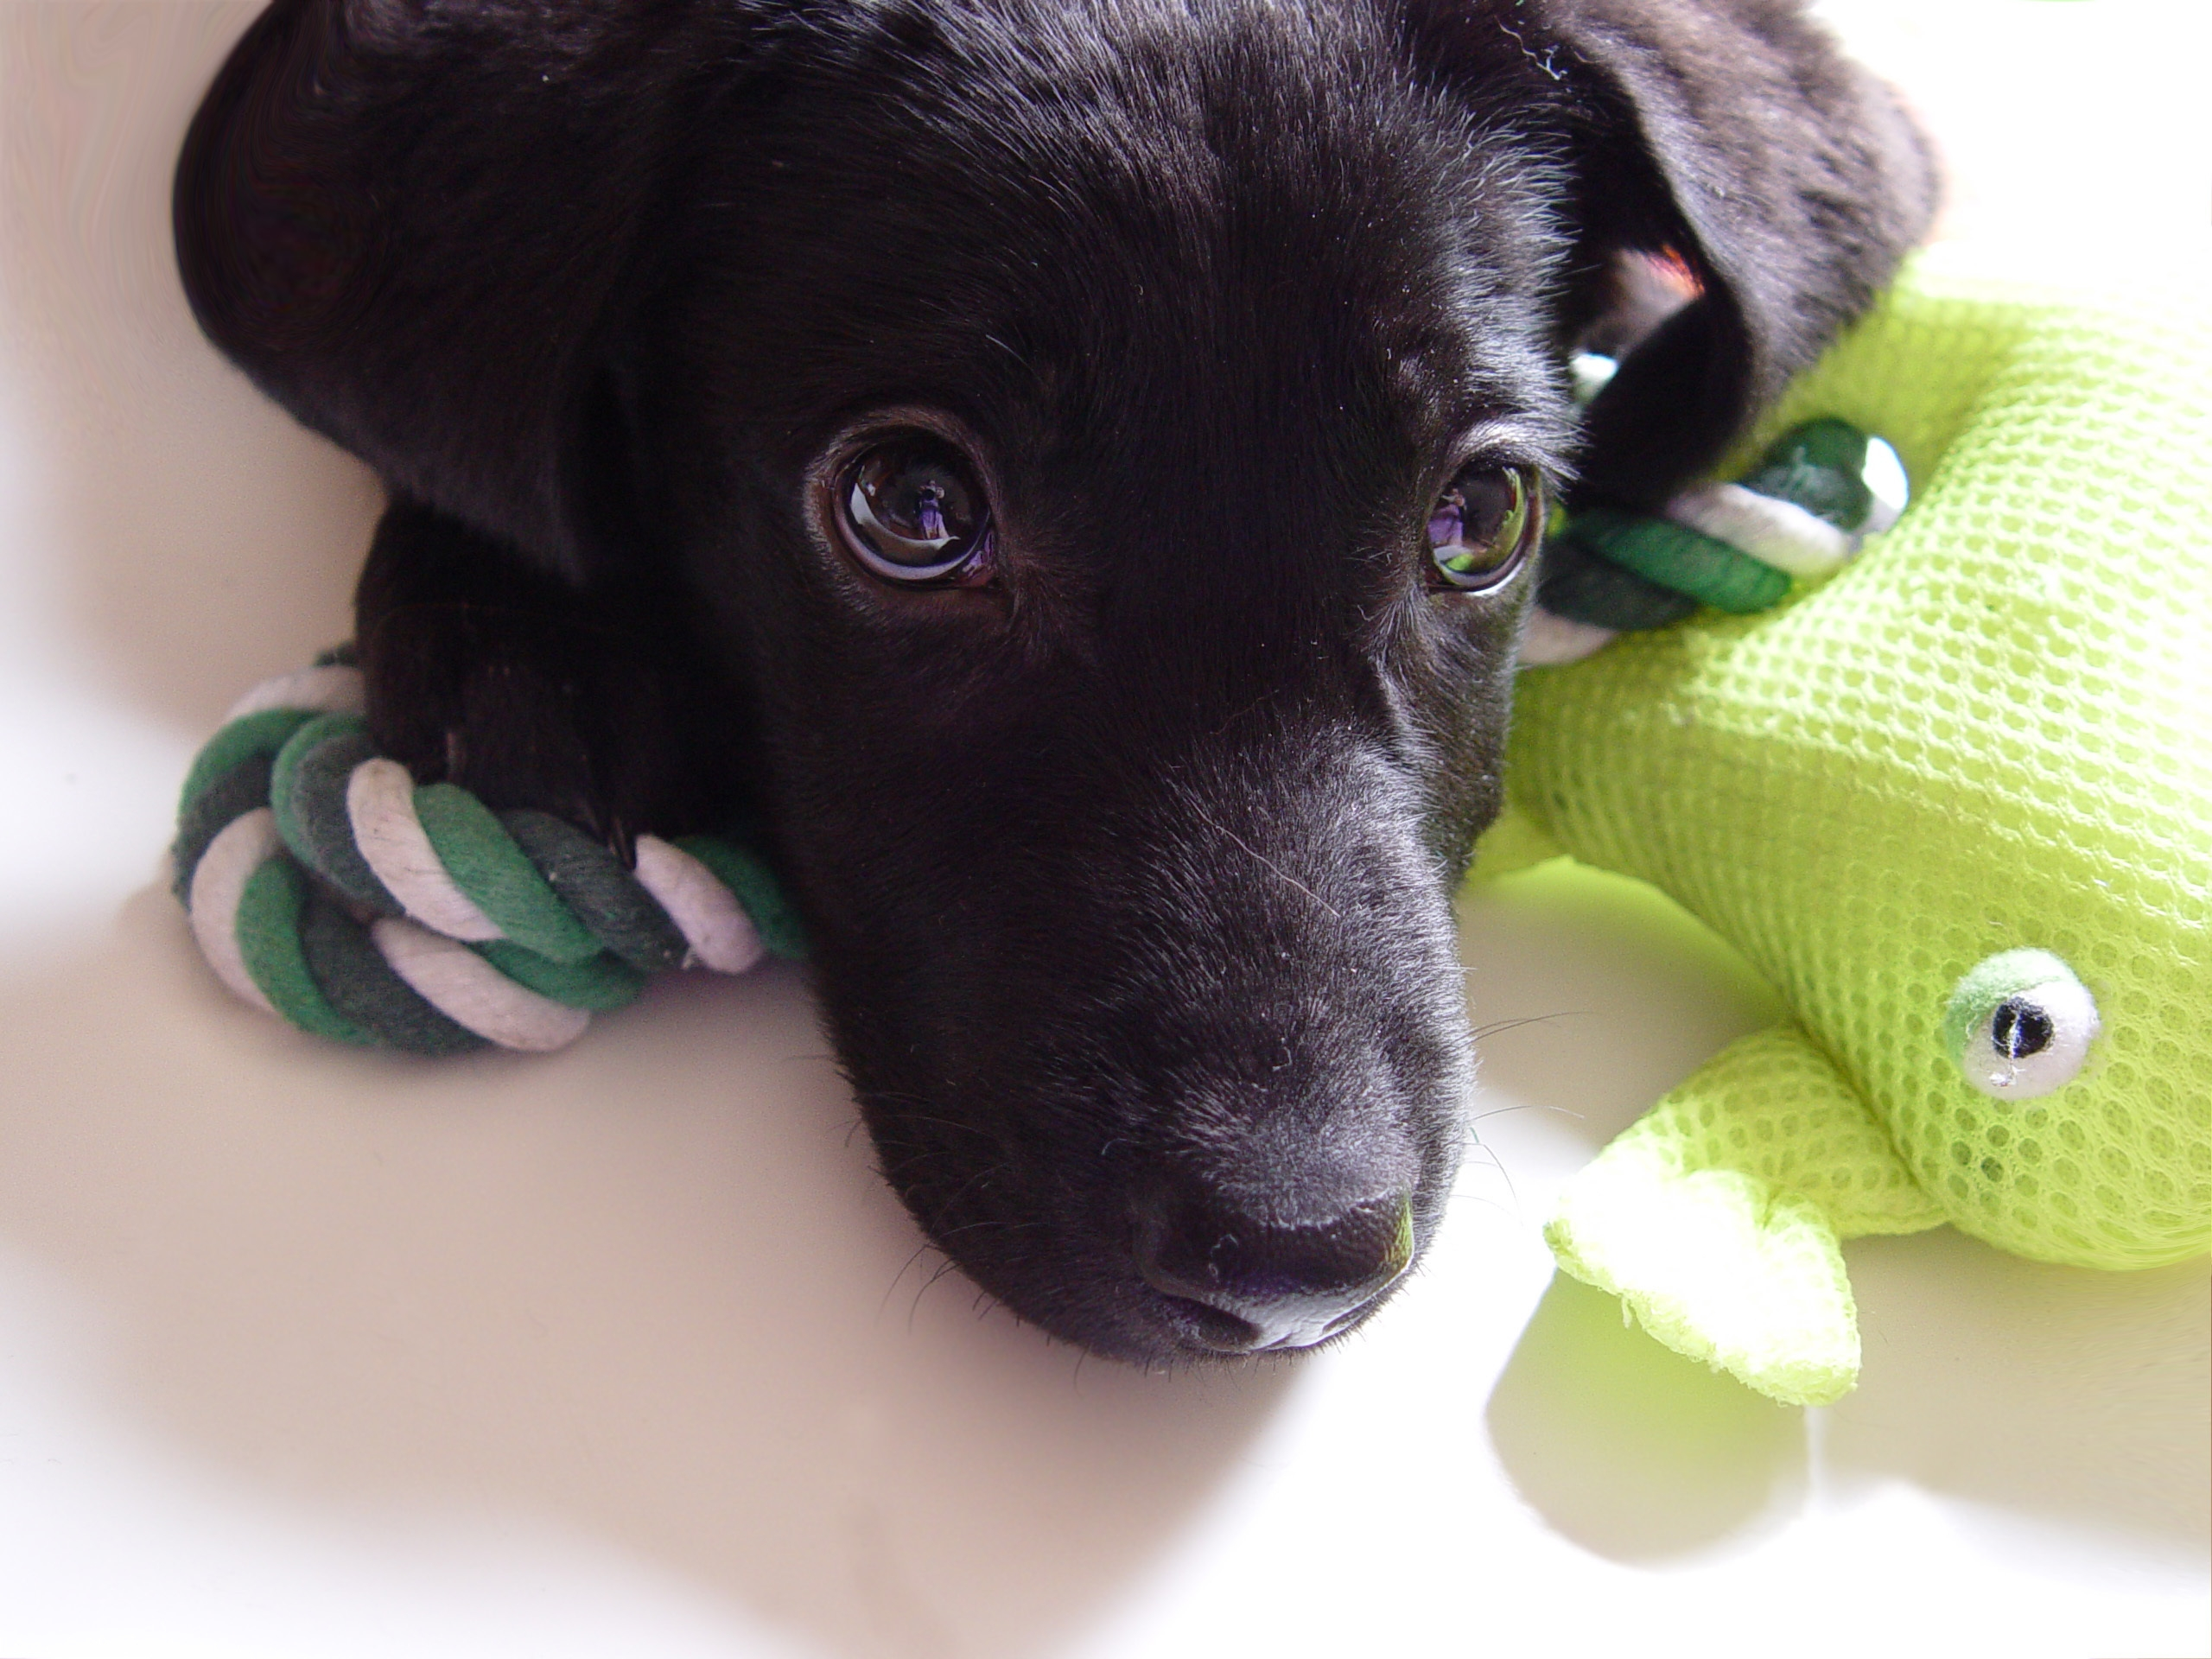 124109 download wallpaper Animals, Dog, Puppy, Labrador, Muzzle, Sight, Opinion screensavers and pictures for free